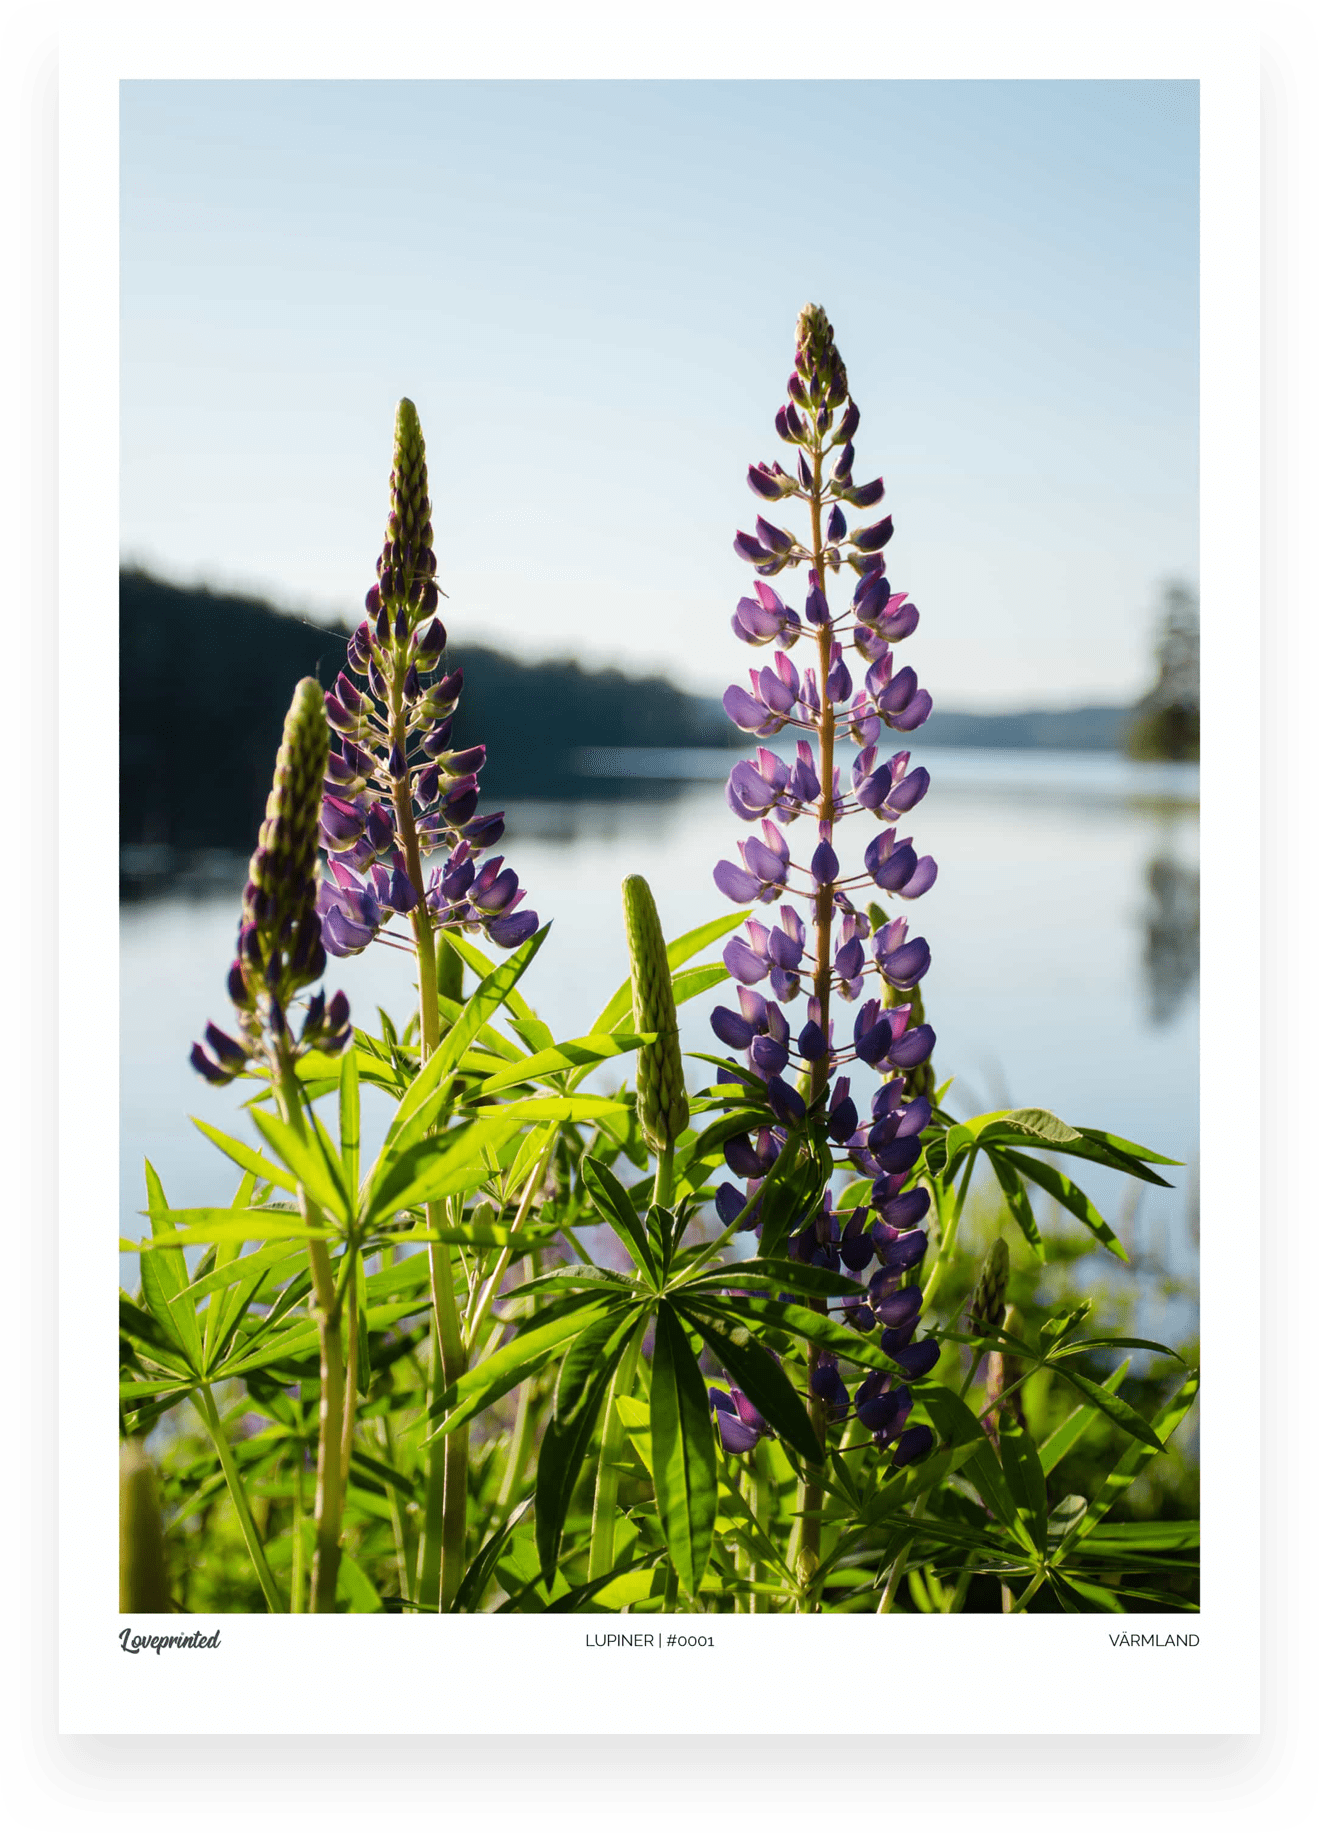 Lupiner | An Image of lupines with a lake in the background in Sweden made by Loveprinted